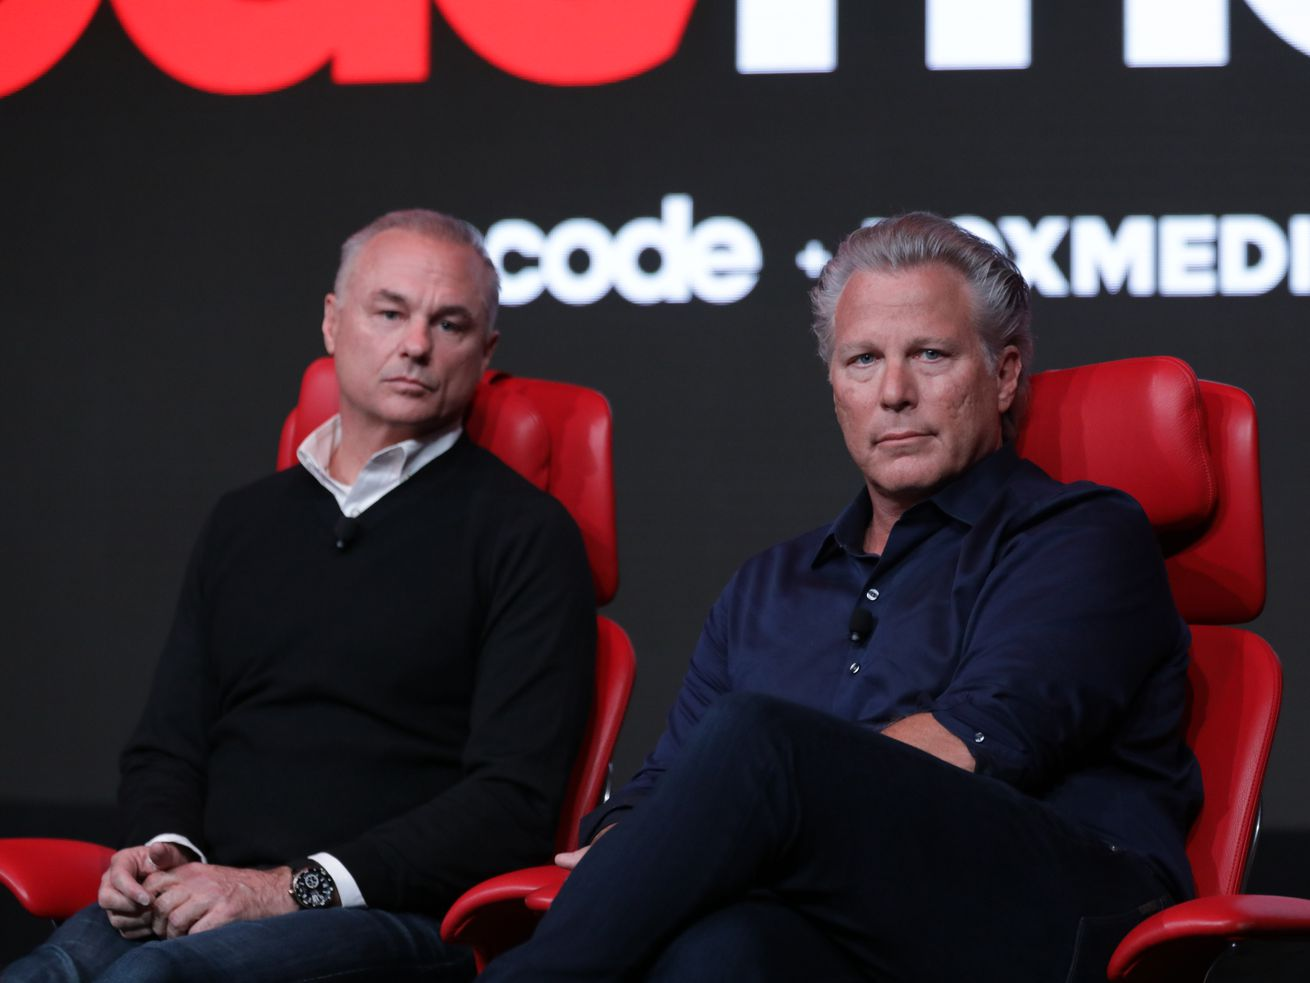 Maven Media founder and CEO James Heckman and Sports Illustrated CEO Ross Levinsohn onstage at Code Media 2019.